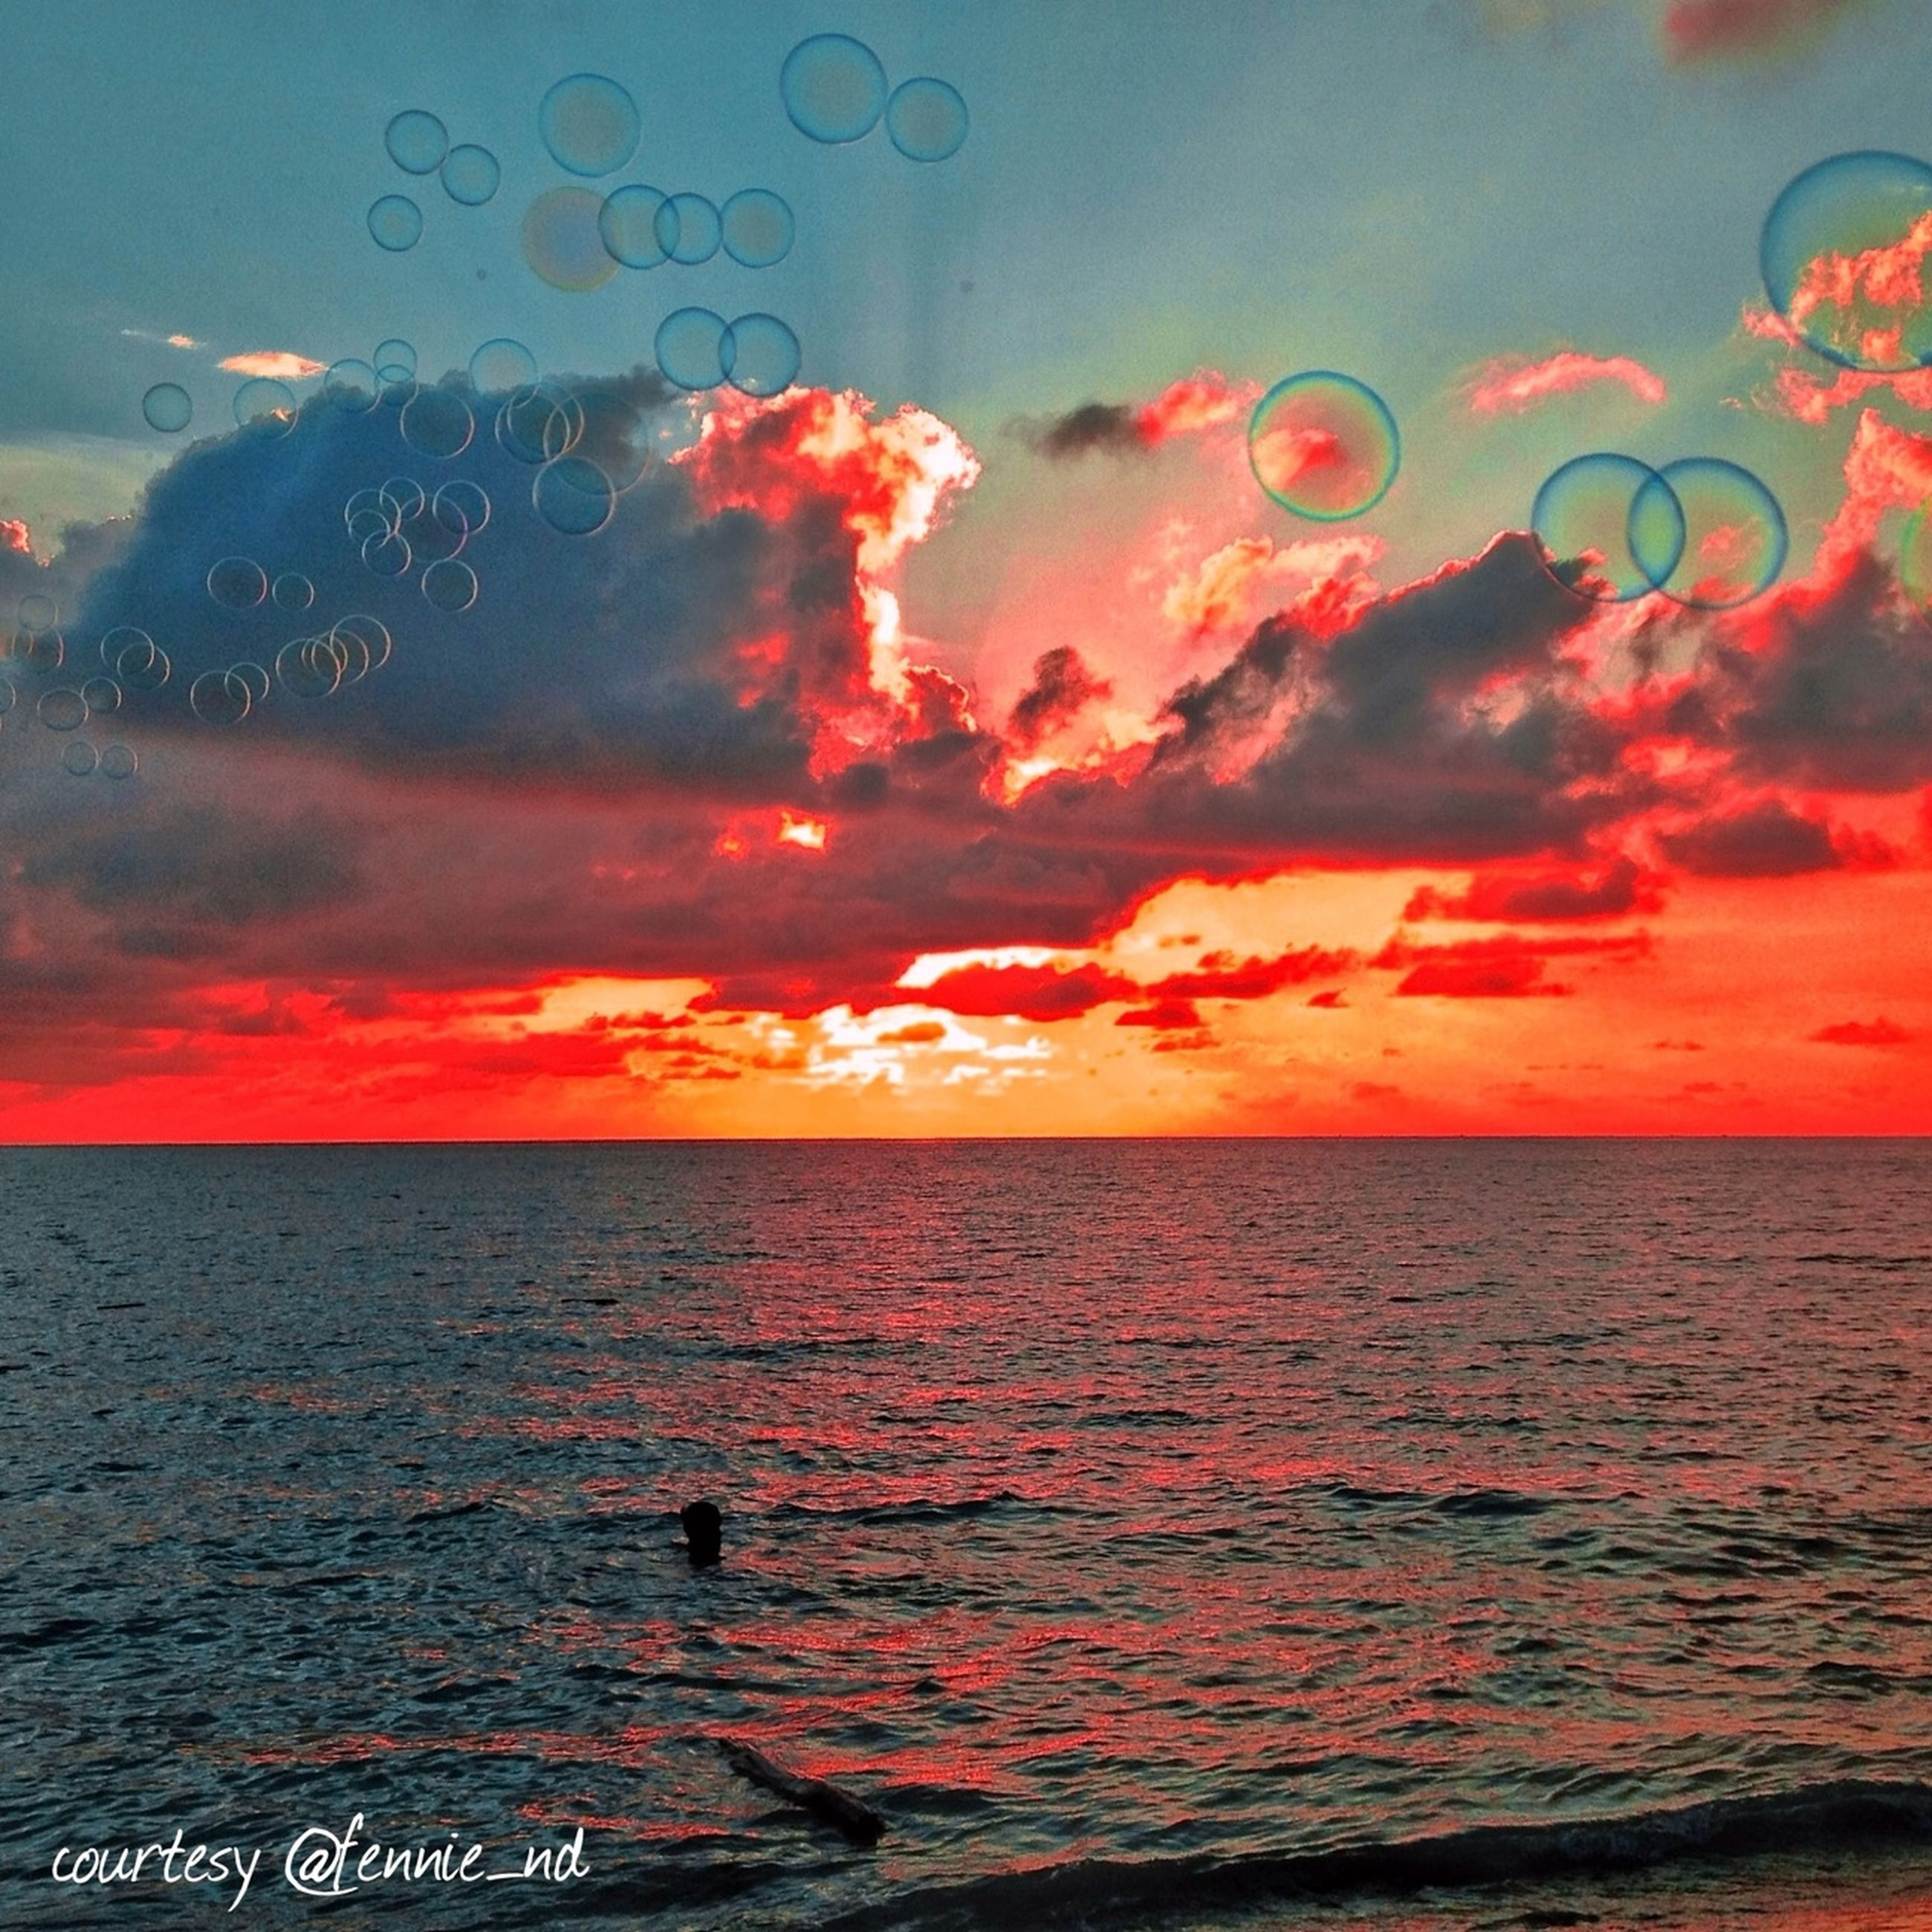 water, sunset, sea, scenics, horizon over water, sky, beauty in nature, tranquil scene, cloud - sky, tranquility, orange color, idyllic, nature, waterfront, rippled, dramatic sky, cloudy, reflection, cloud, sun